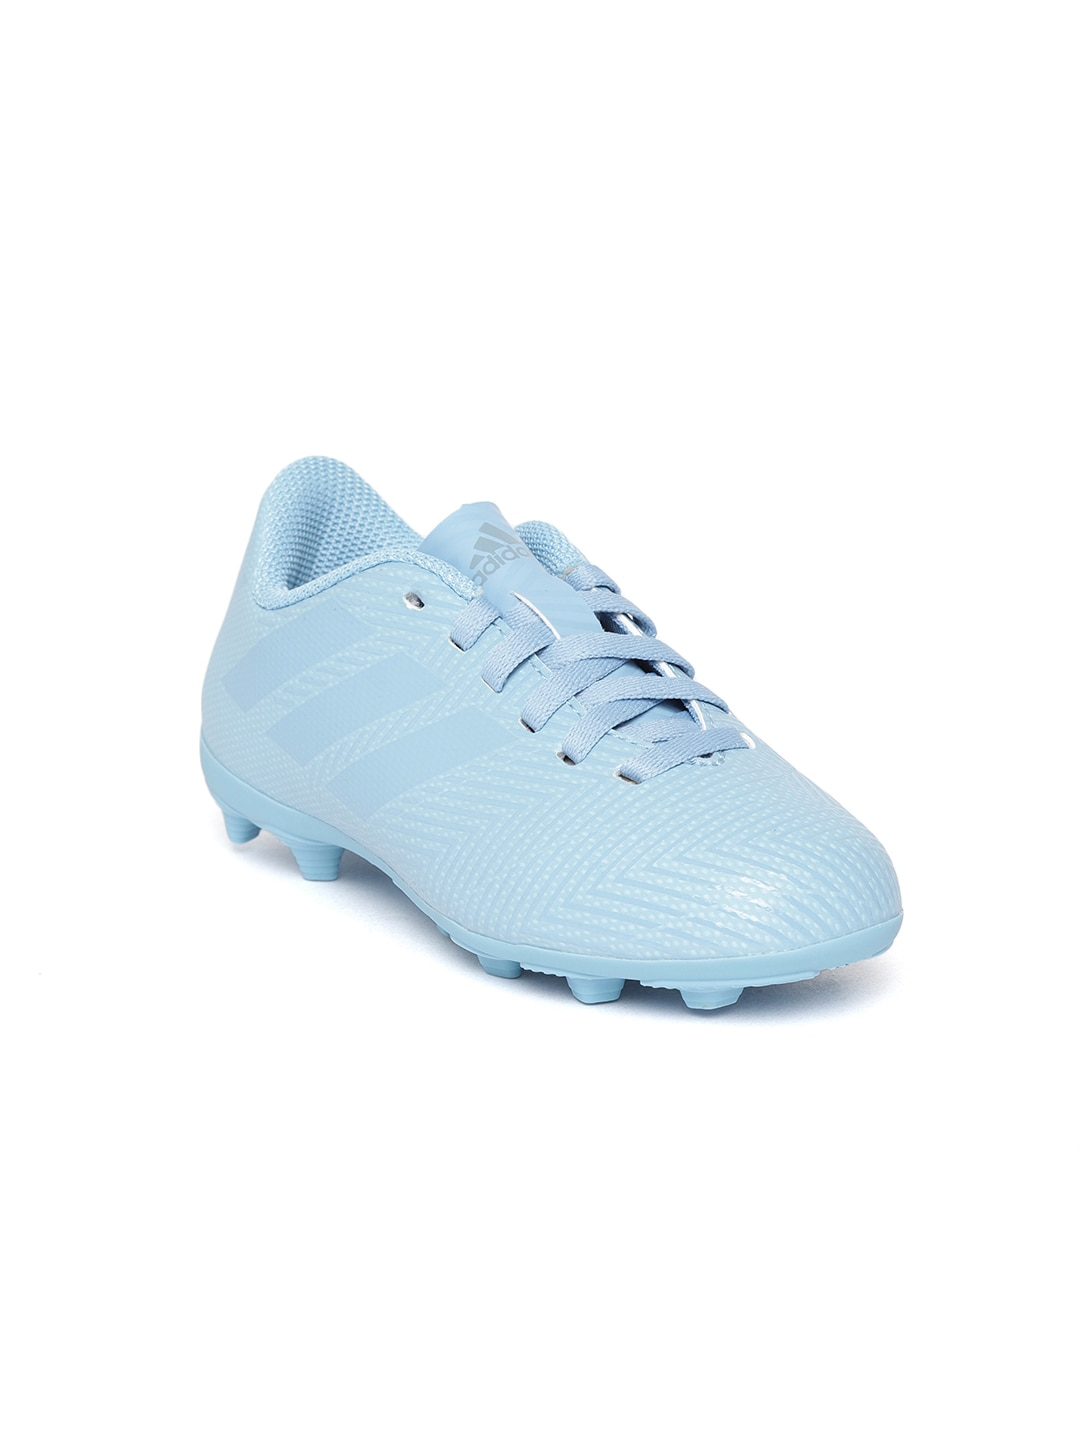 b3ce77ad5edd Adidas Shoes Boys Girls - Buy Adidas Shoes Boys Girls online in India